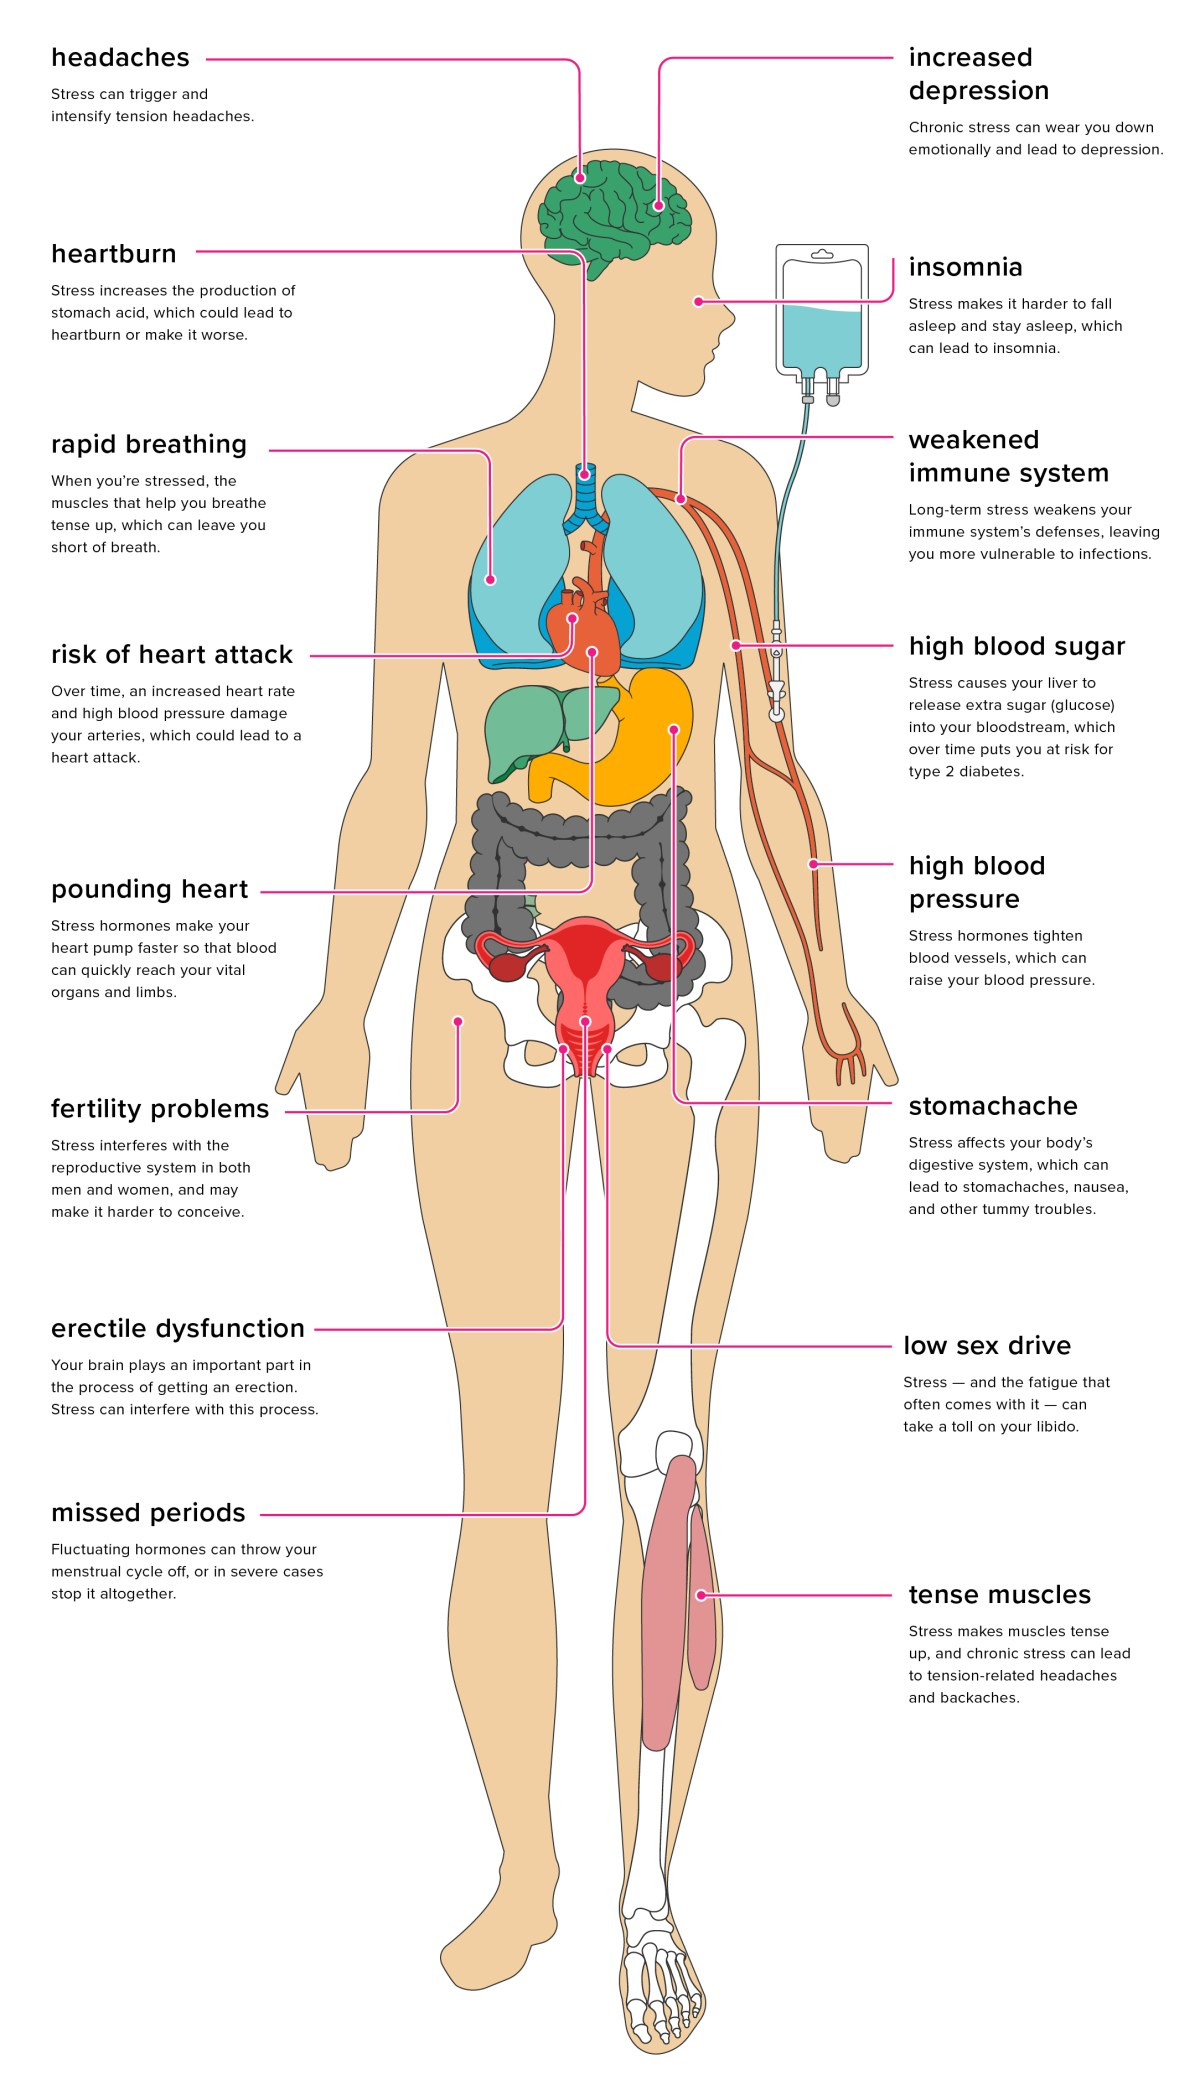 Stress Effects Pinterest 2 - STROKE: 8 QUICK FACTS WITH PROACTIVE PREVENTION TIPS